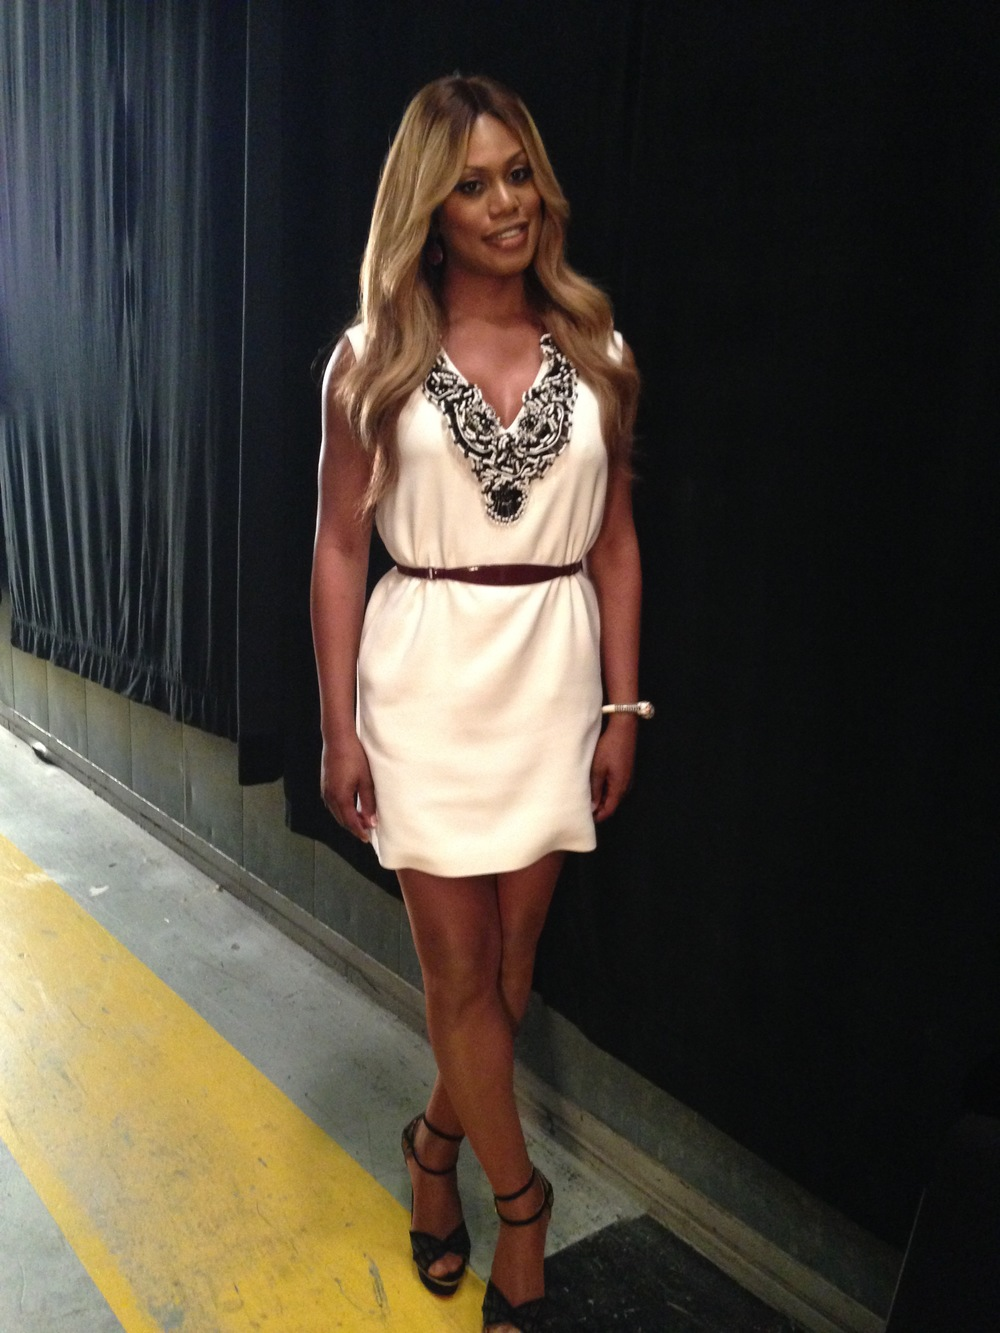 Laverne Cox on ABC's The View, October 2014 (second appearance)